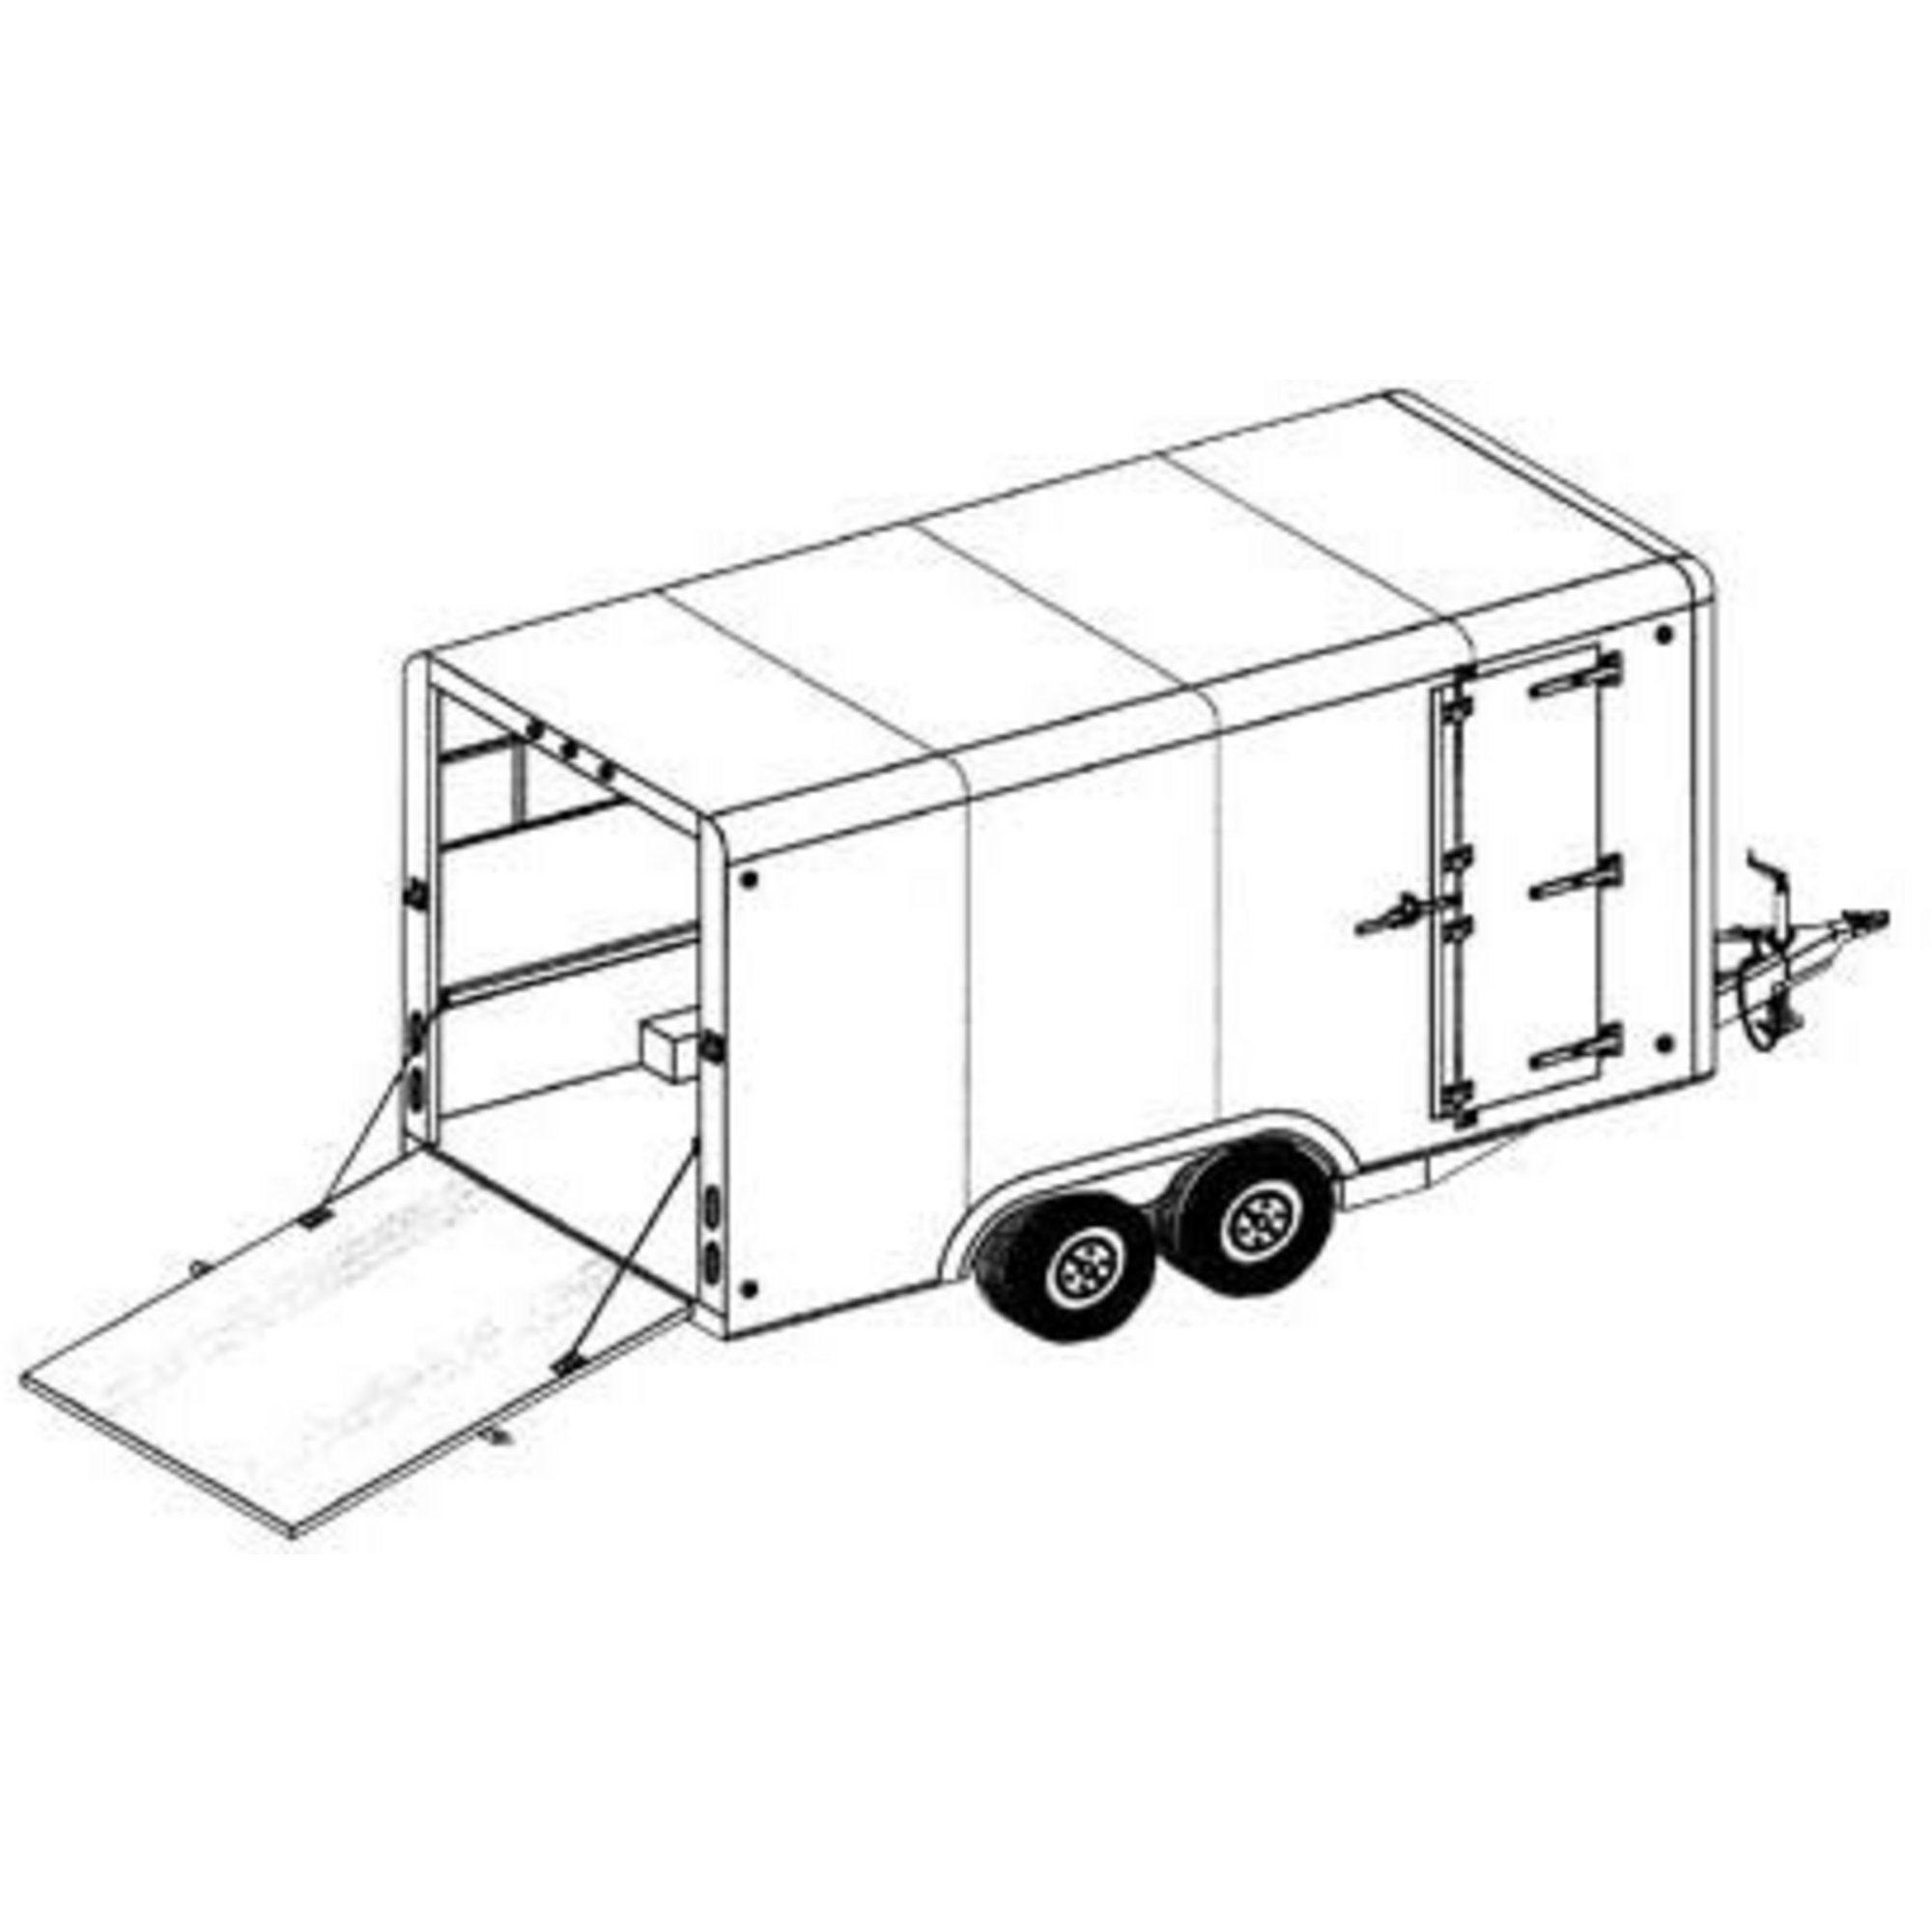 Trailer Drawing At Getdrawings